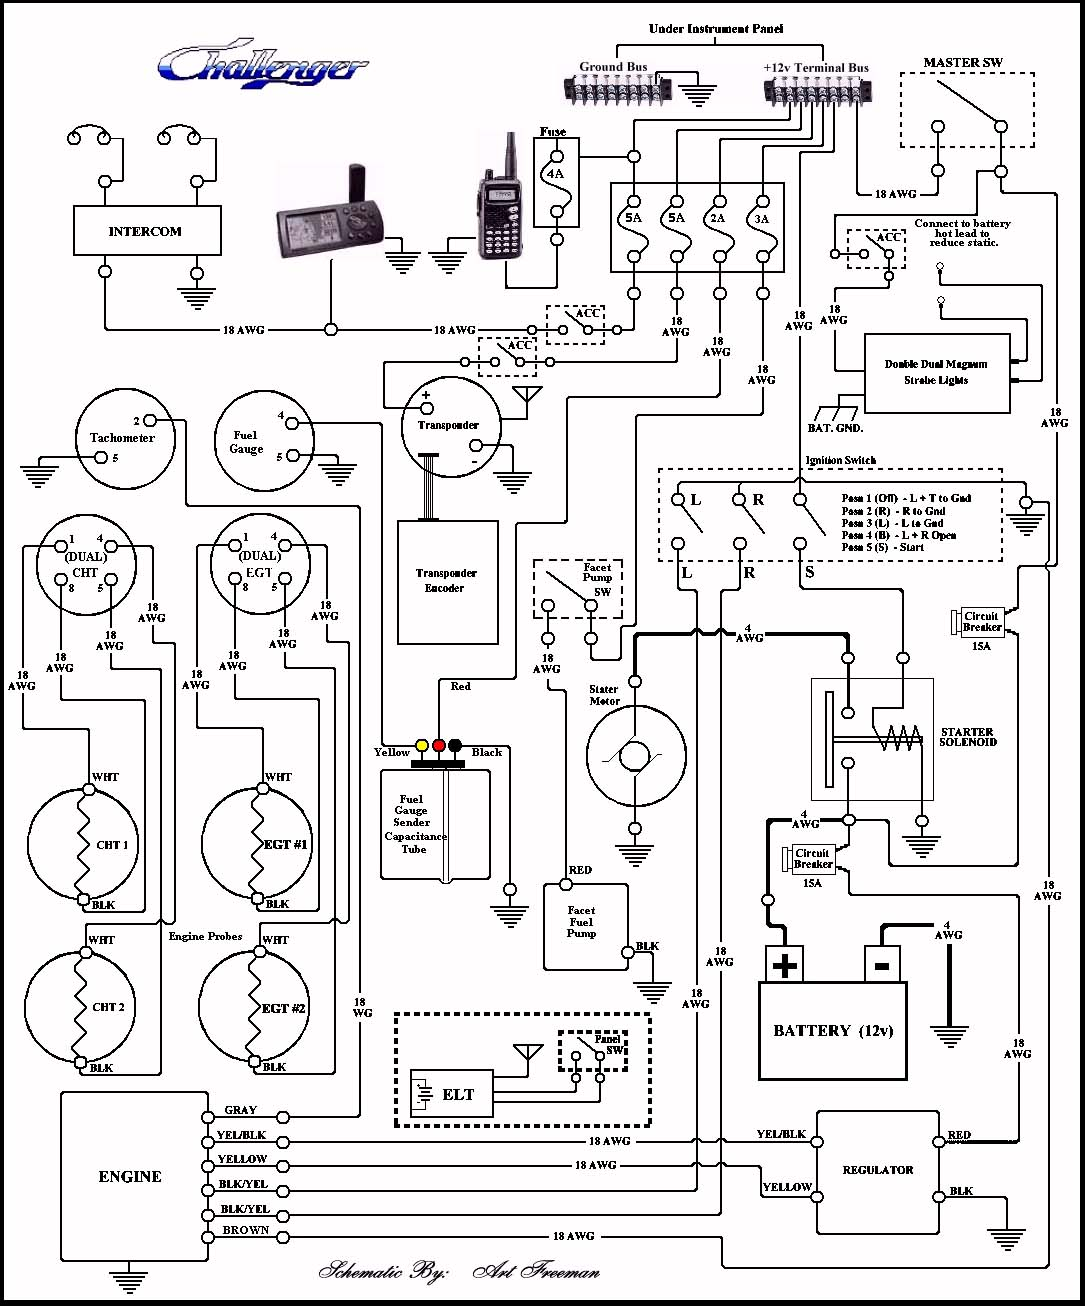 ... following electrical schematic.